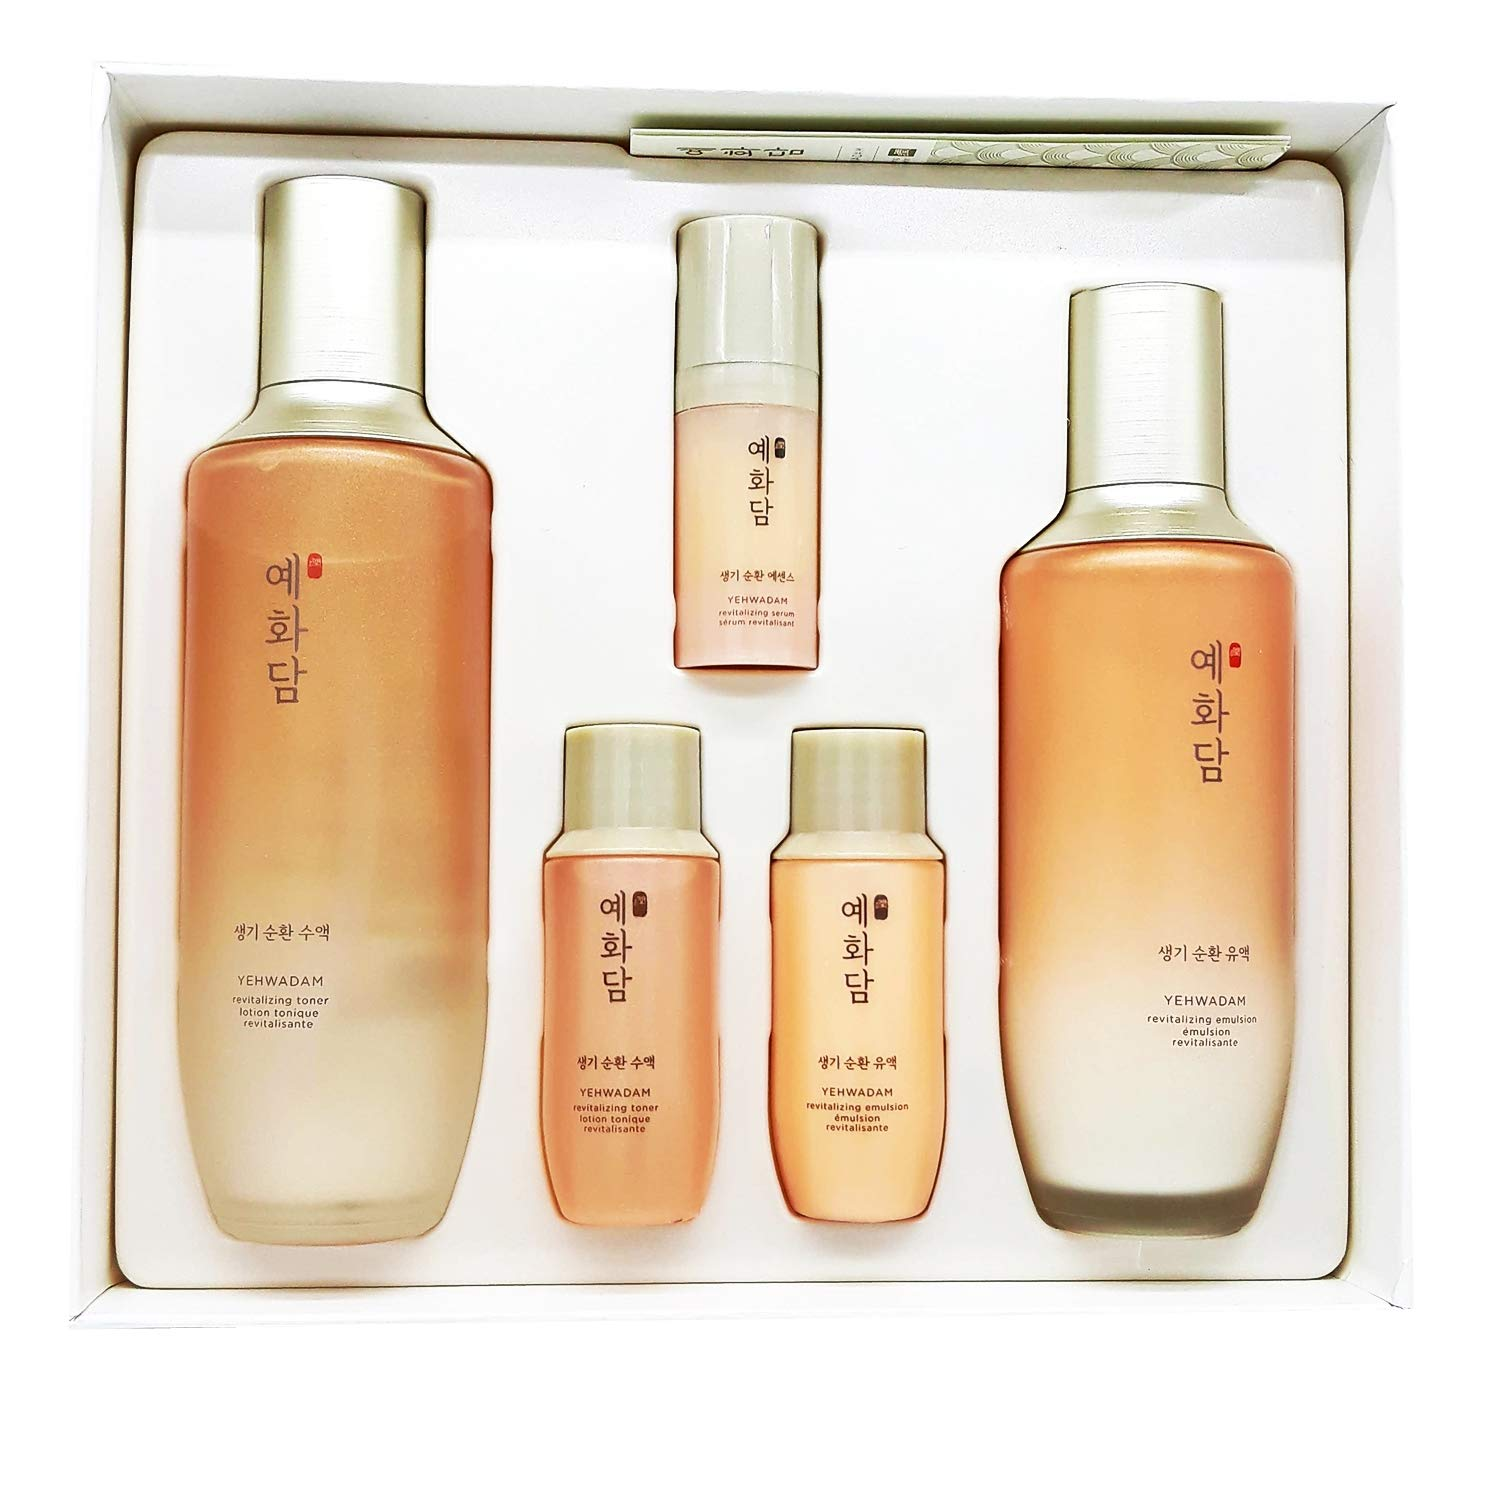 [THEFACESHOP] Yehwadam Revitalizing Anti Aging Skincare Set, Long Lasting Hydration and Nourishment from Korean Ginseng